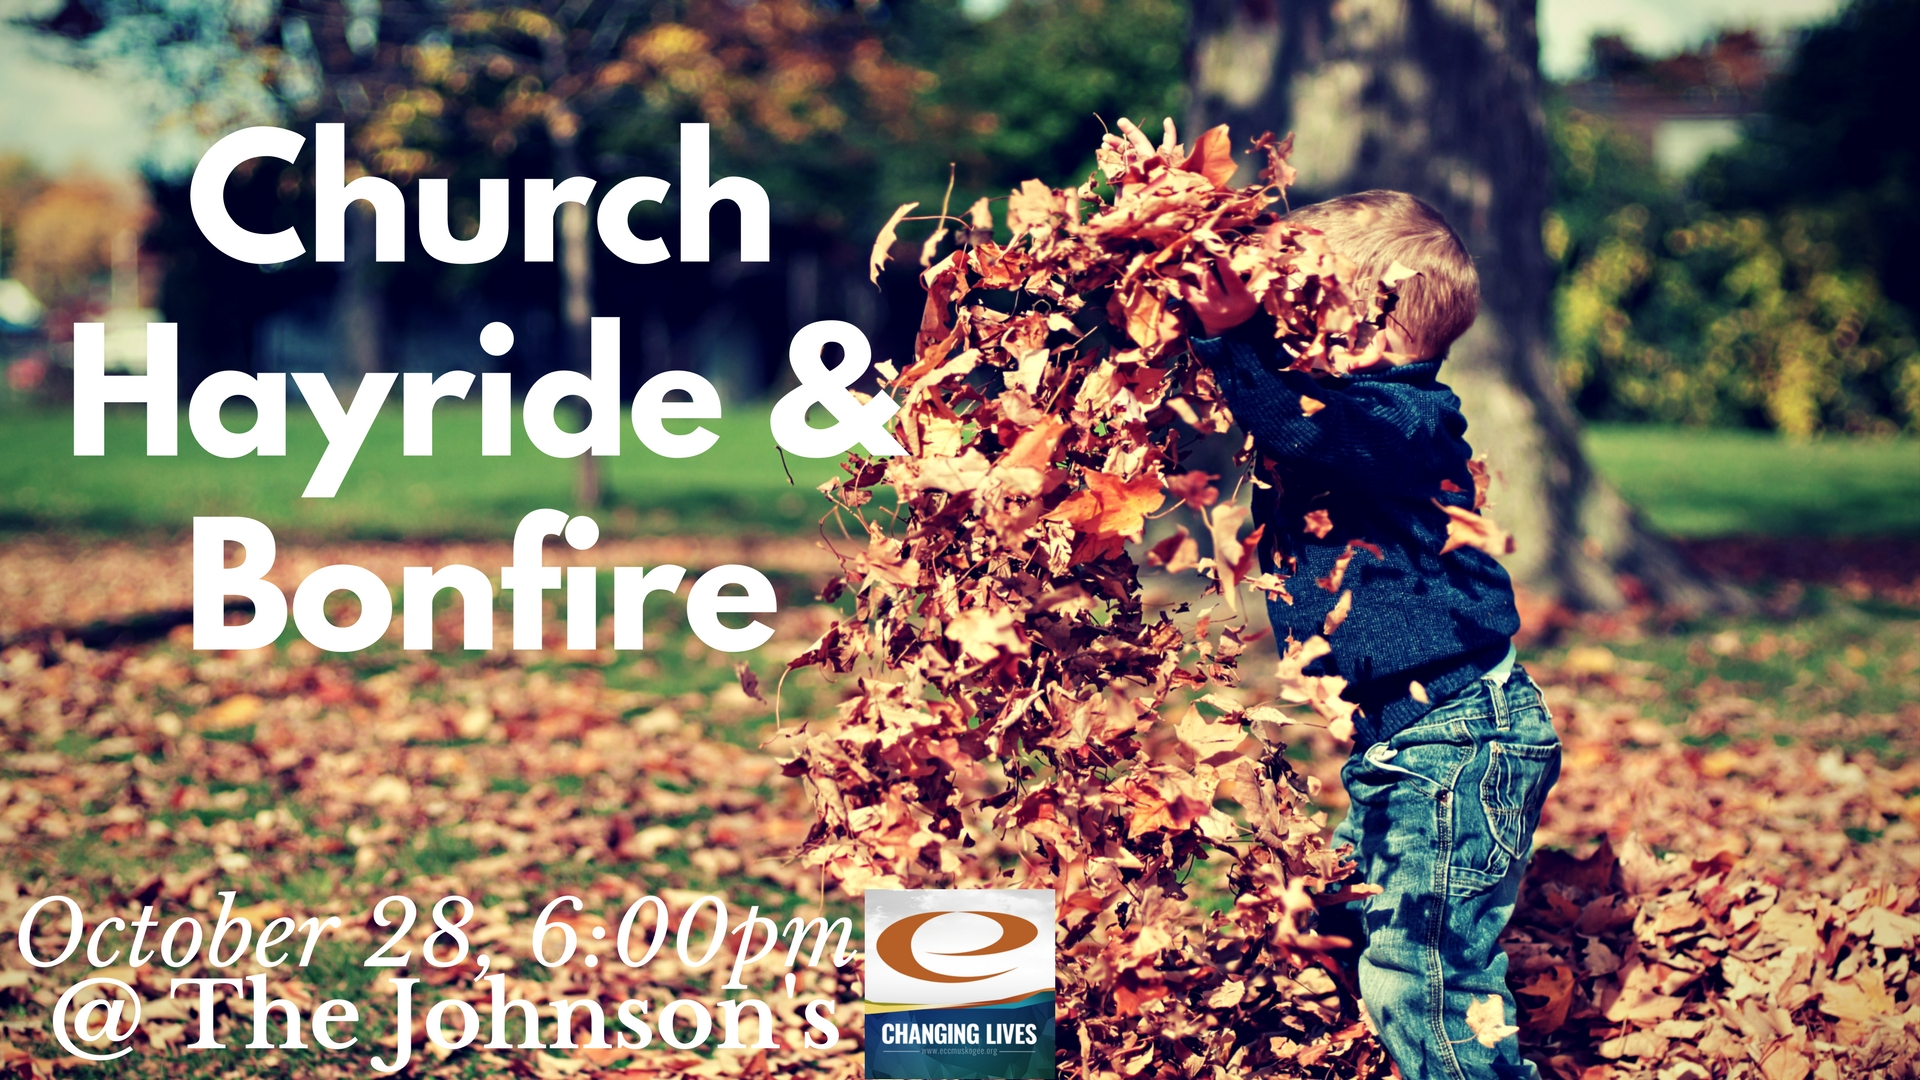 Church hayride   bonfire slide